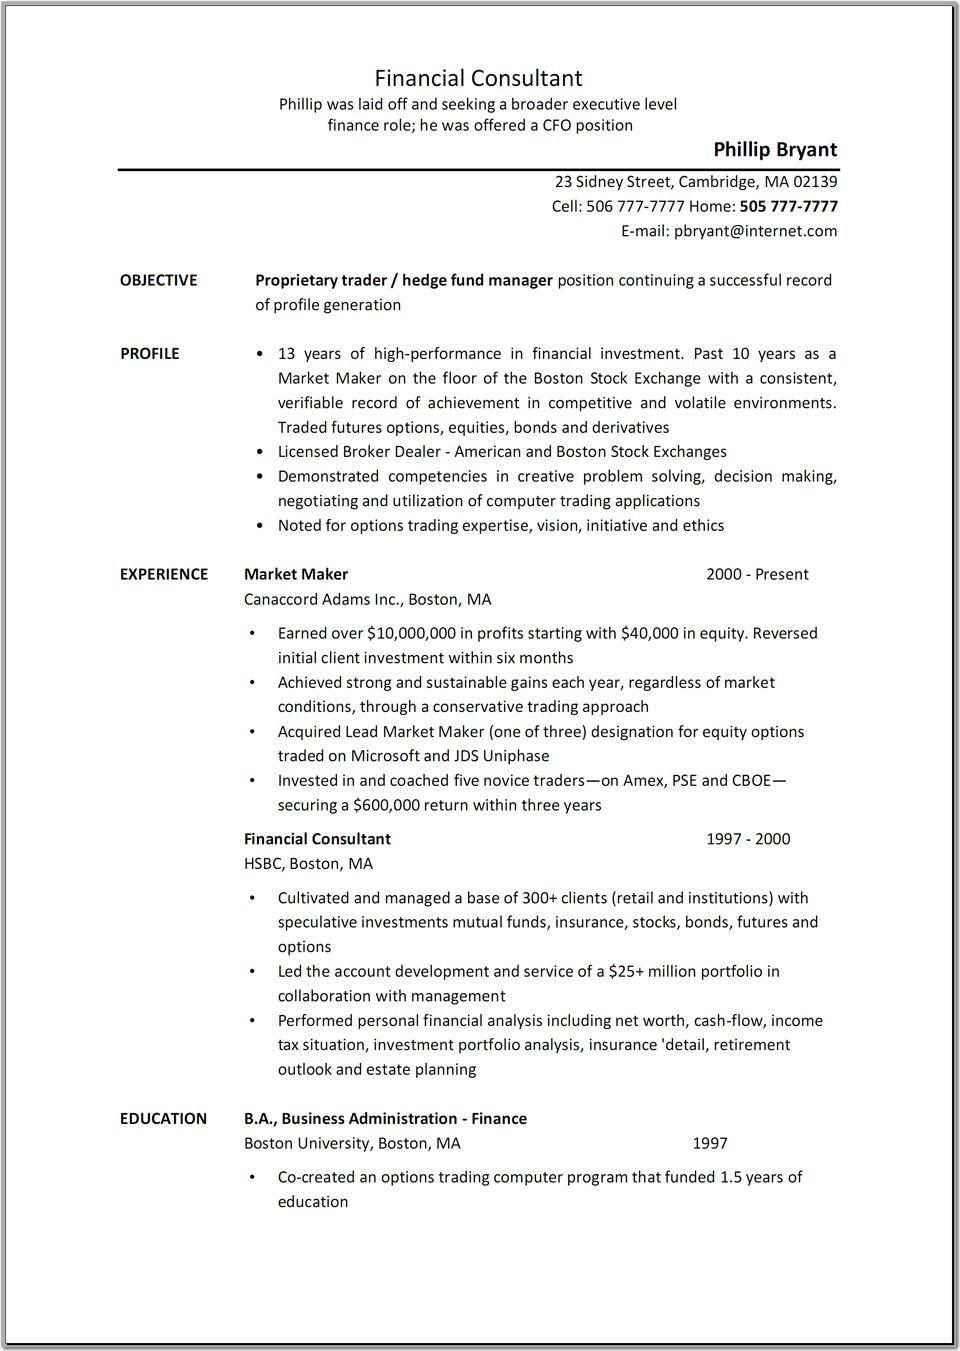 Resume Consultant Business Consultant Job Description Resume  Sample Resume Center